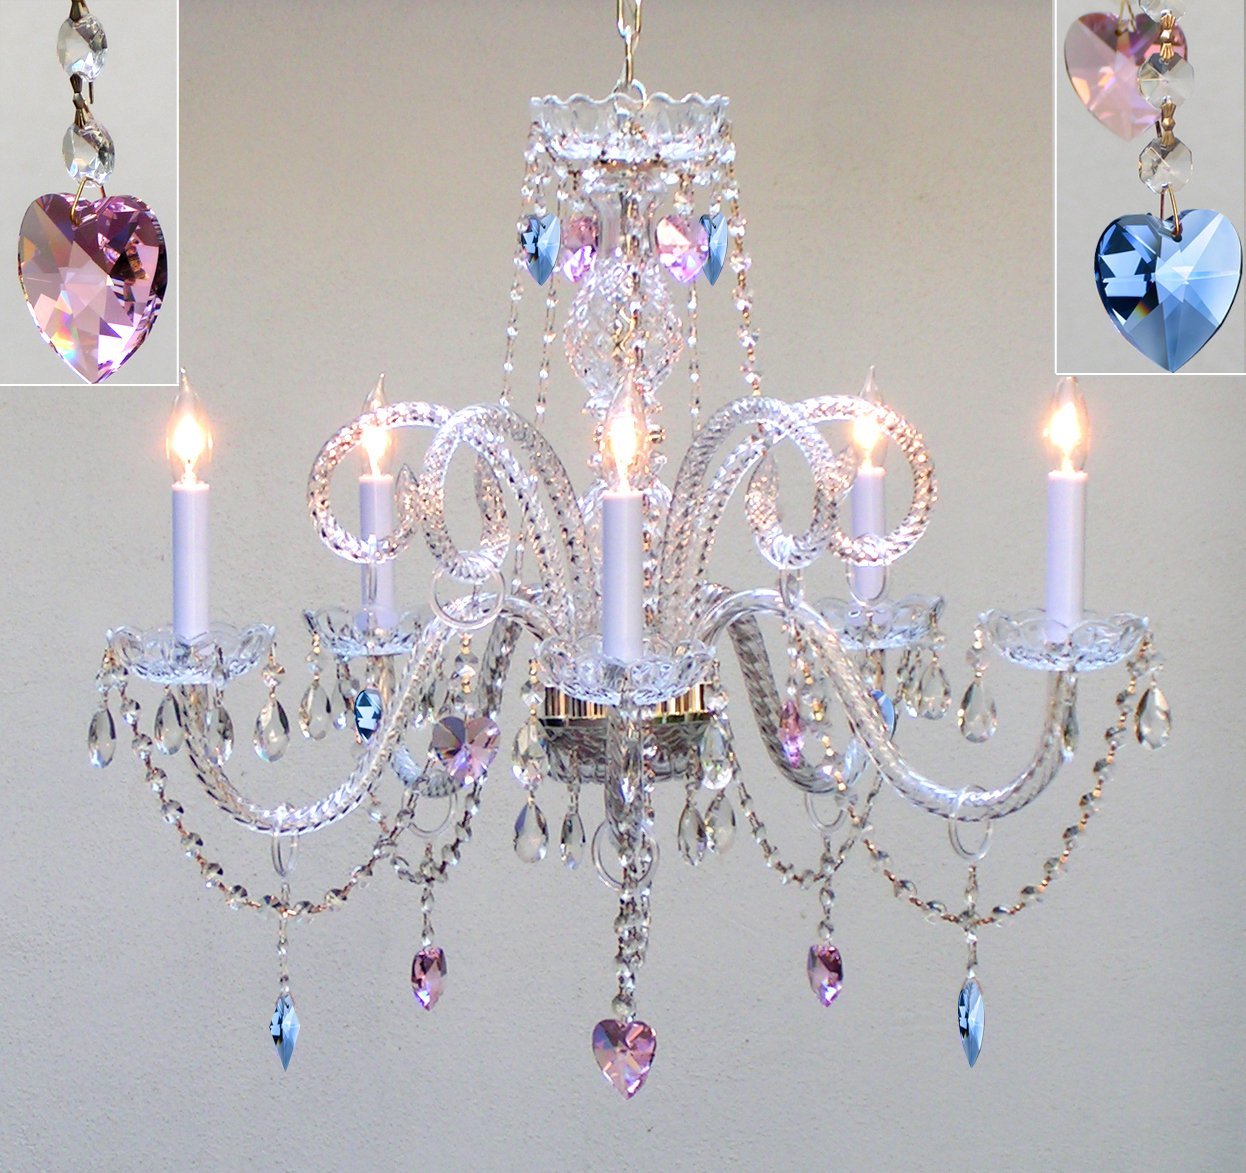 """Authentic All Crystal Chandelier Chandeliers Lighting With Sapphire Blue & Pink Crystal Hearts! Perfect for Living Room, Dining Room, Kitchen, Kid's Bedroom! H25"""" W24"""""""